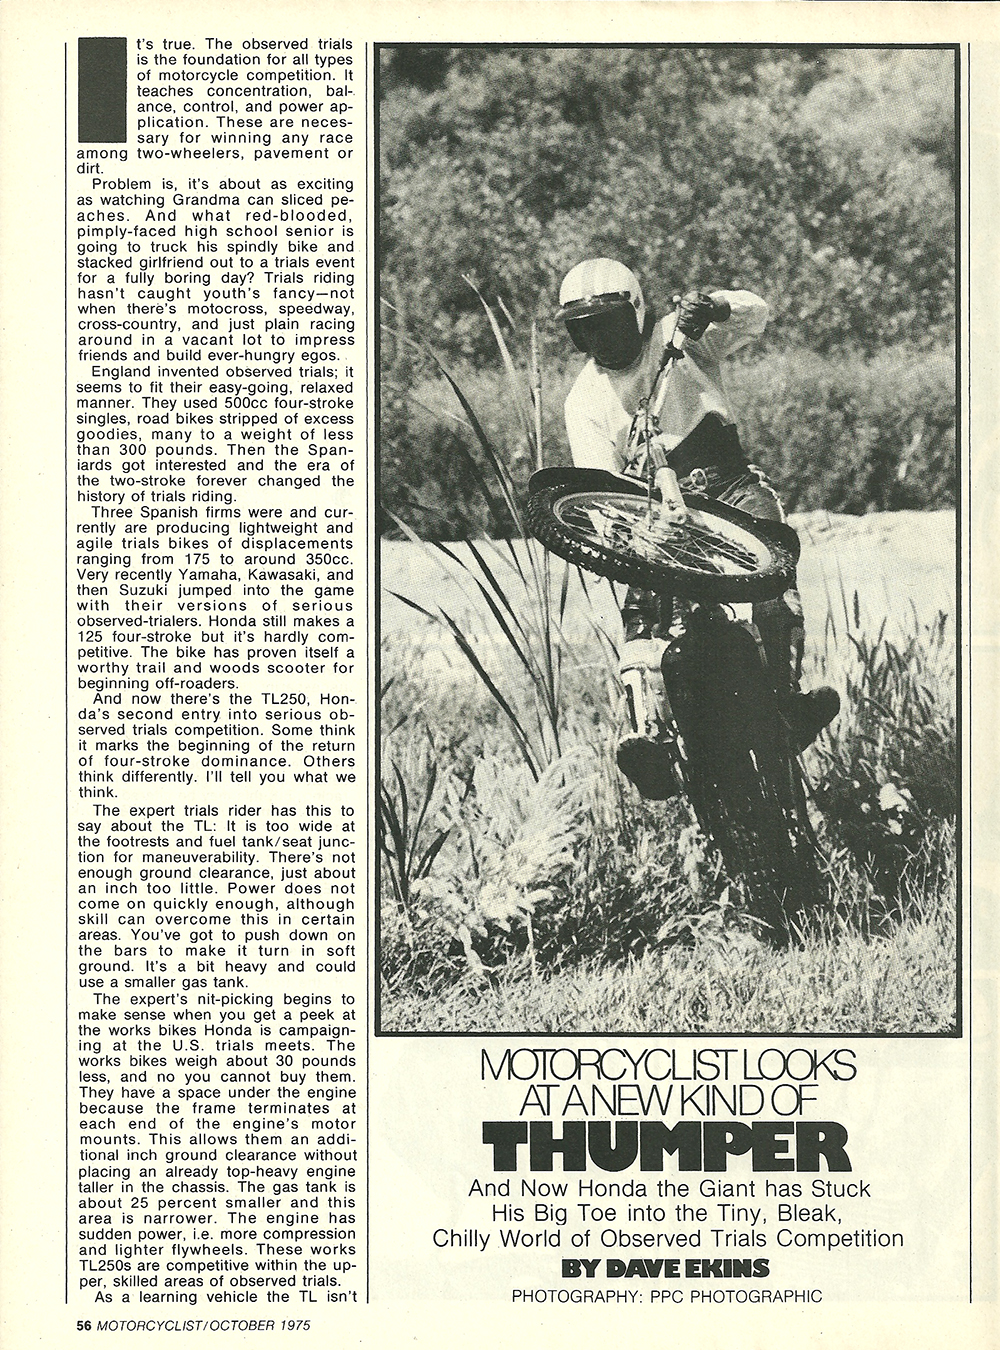 1975 Honda TL250 road test 1.jpg